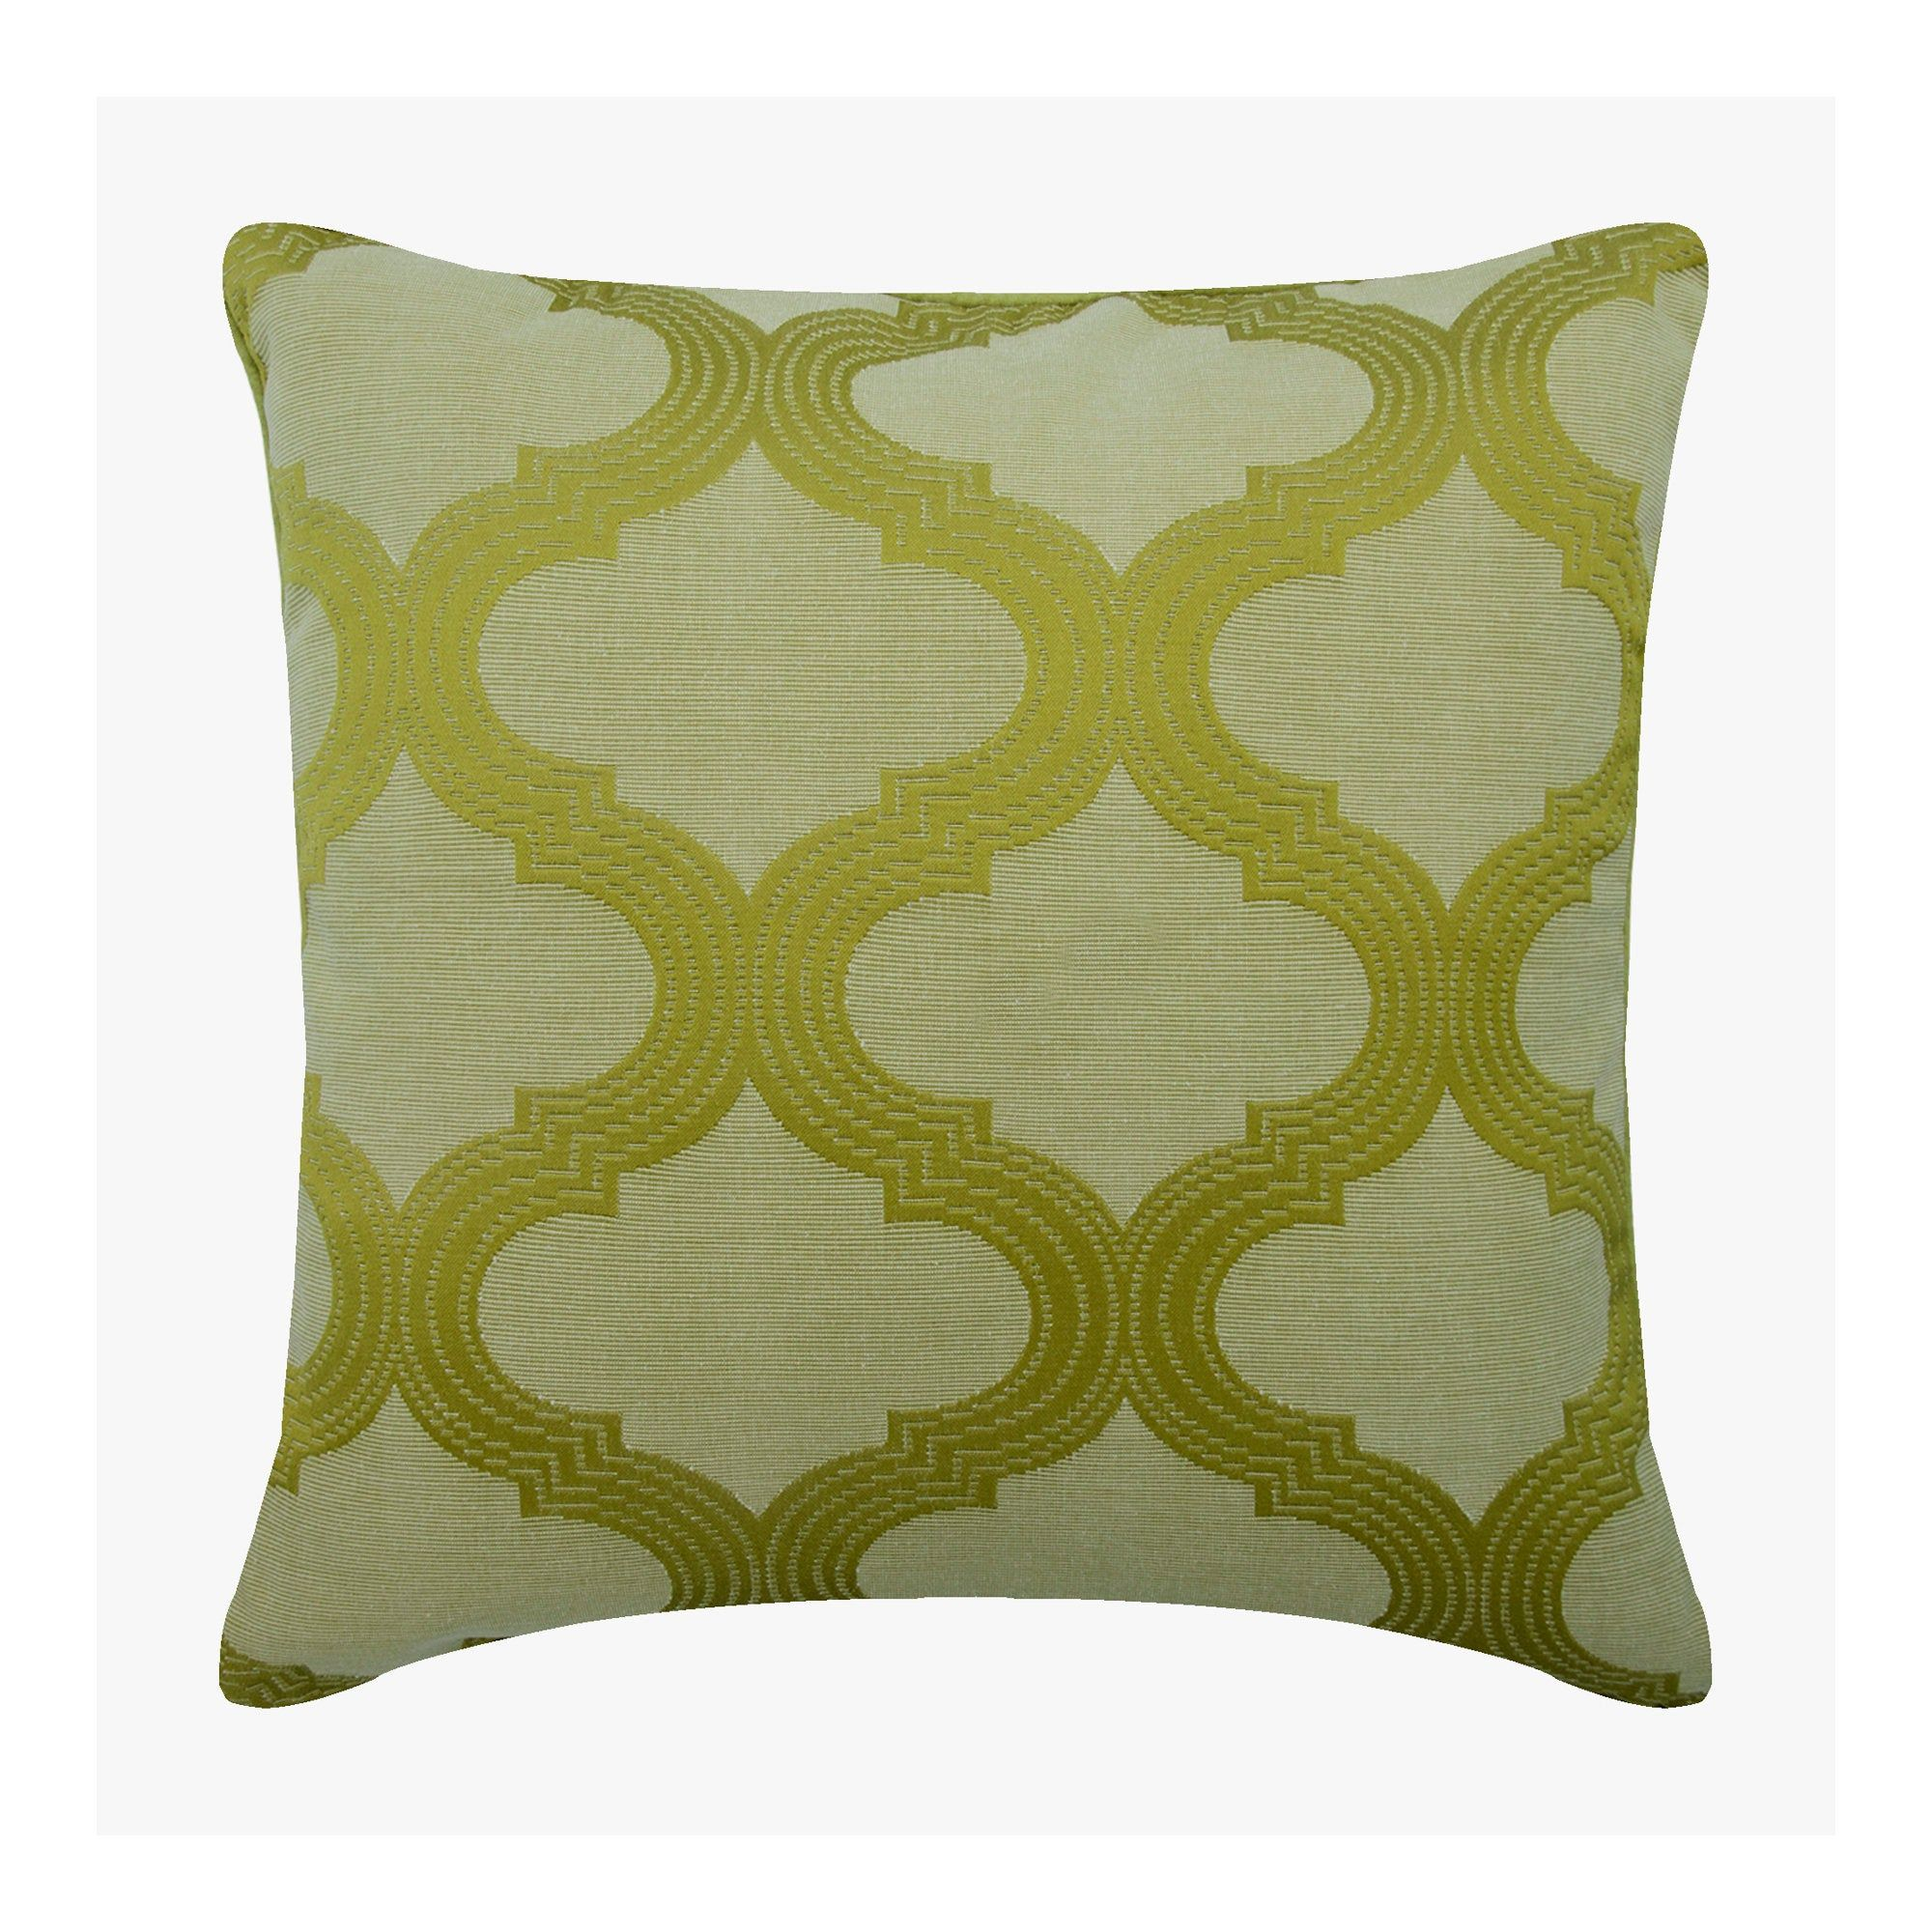 Silk Green Throw Pillow Cover 16 X16 Designer Couch Throw Pillow Case Geometric Pattern Modern Style Home Decor Cushion Trellis Weave With Images Green Throw Pillows Pillows Green Cushions